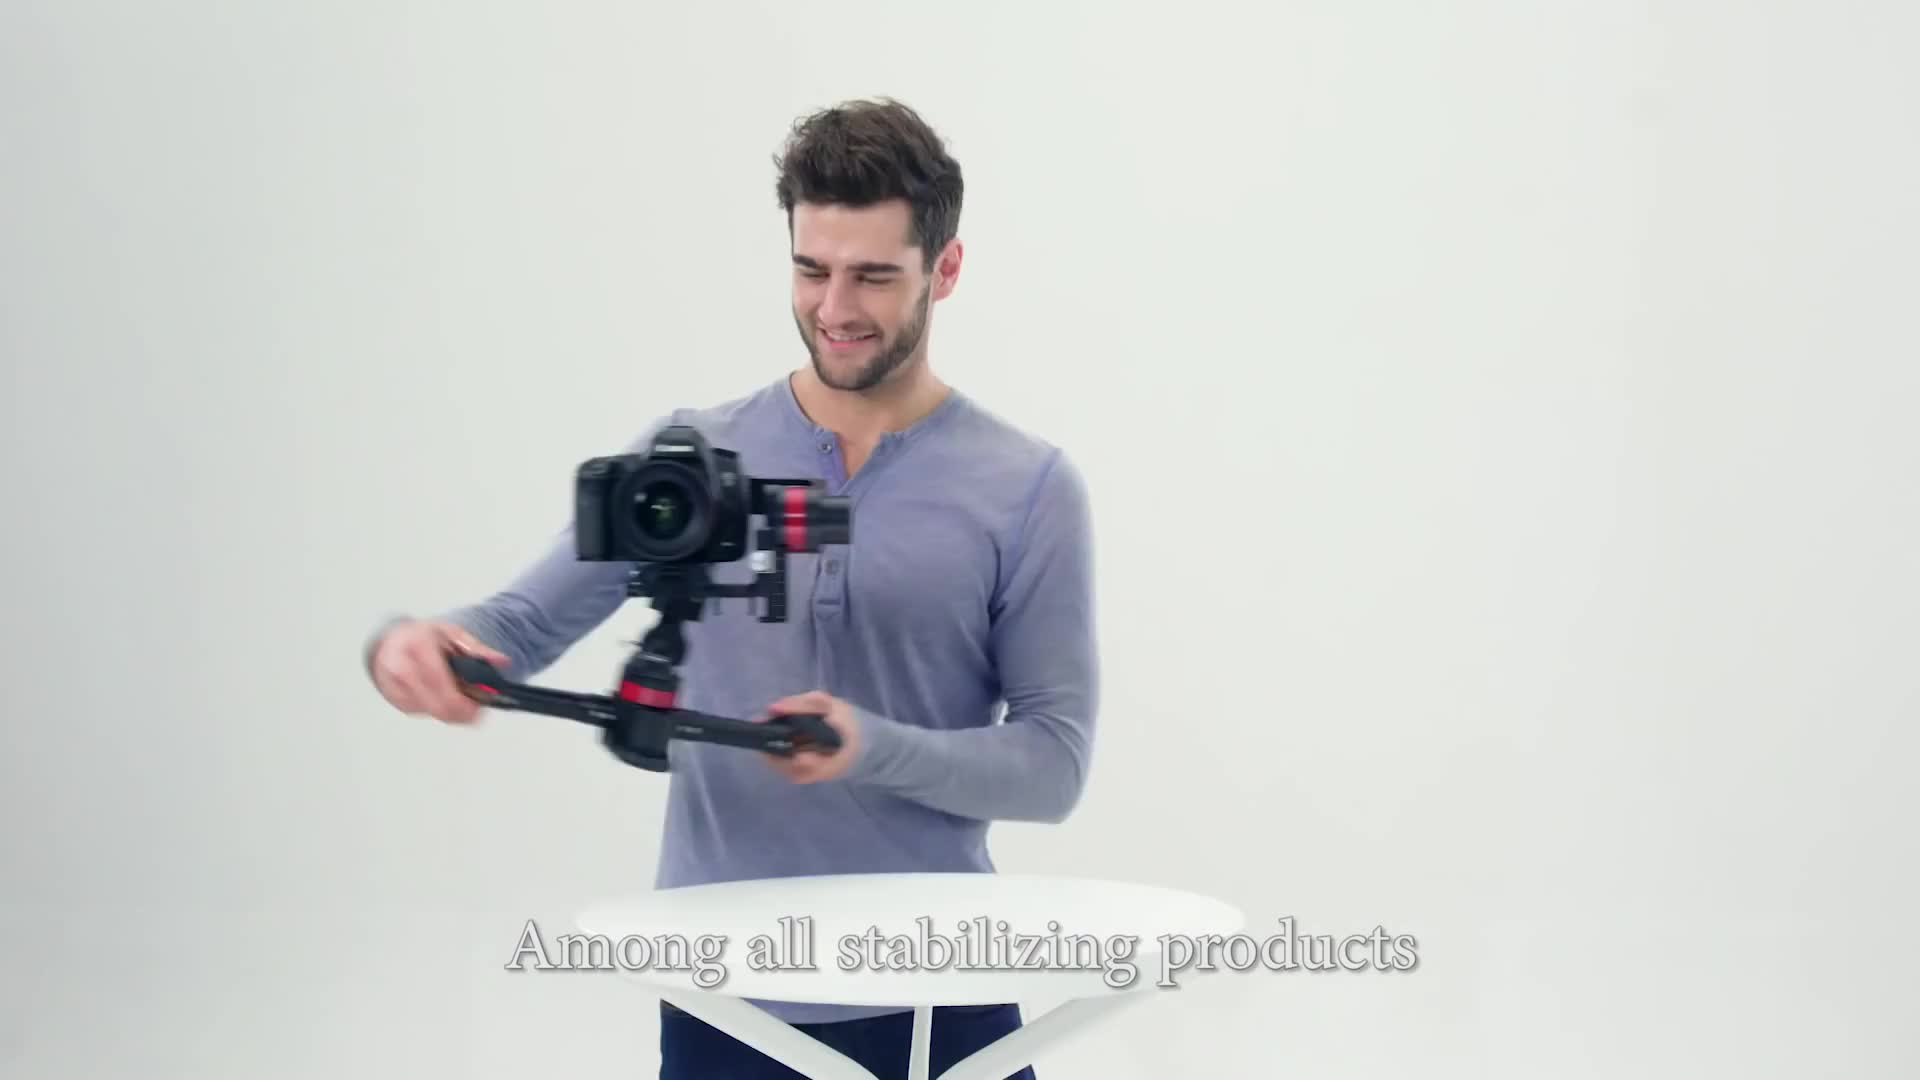 gimbal, somewhat funny, videography, are we done shooting this commercial? great, I'm out. GIFs